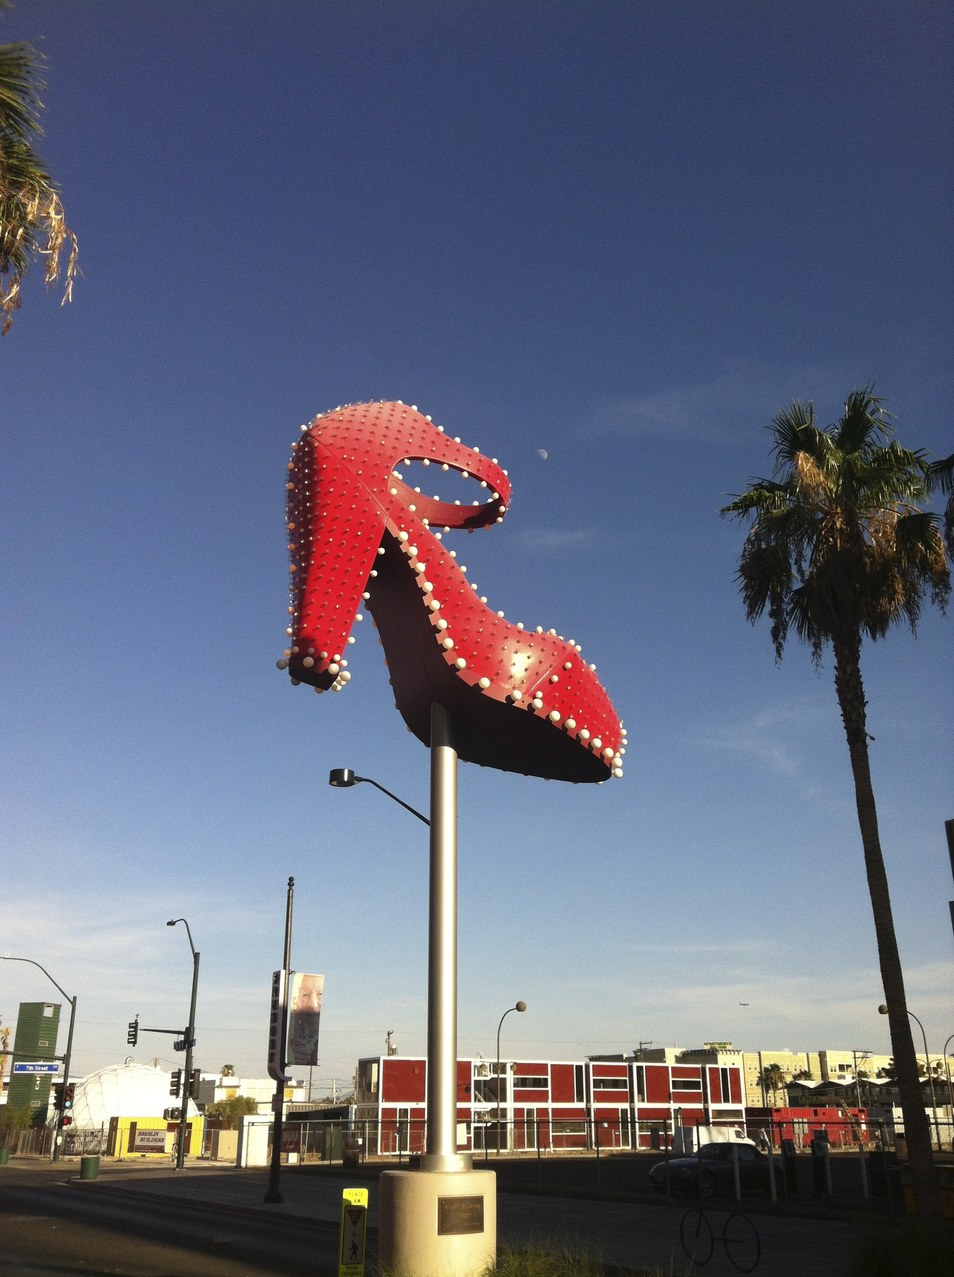 Nido's Best Of Las Vegas and Los Angeles